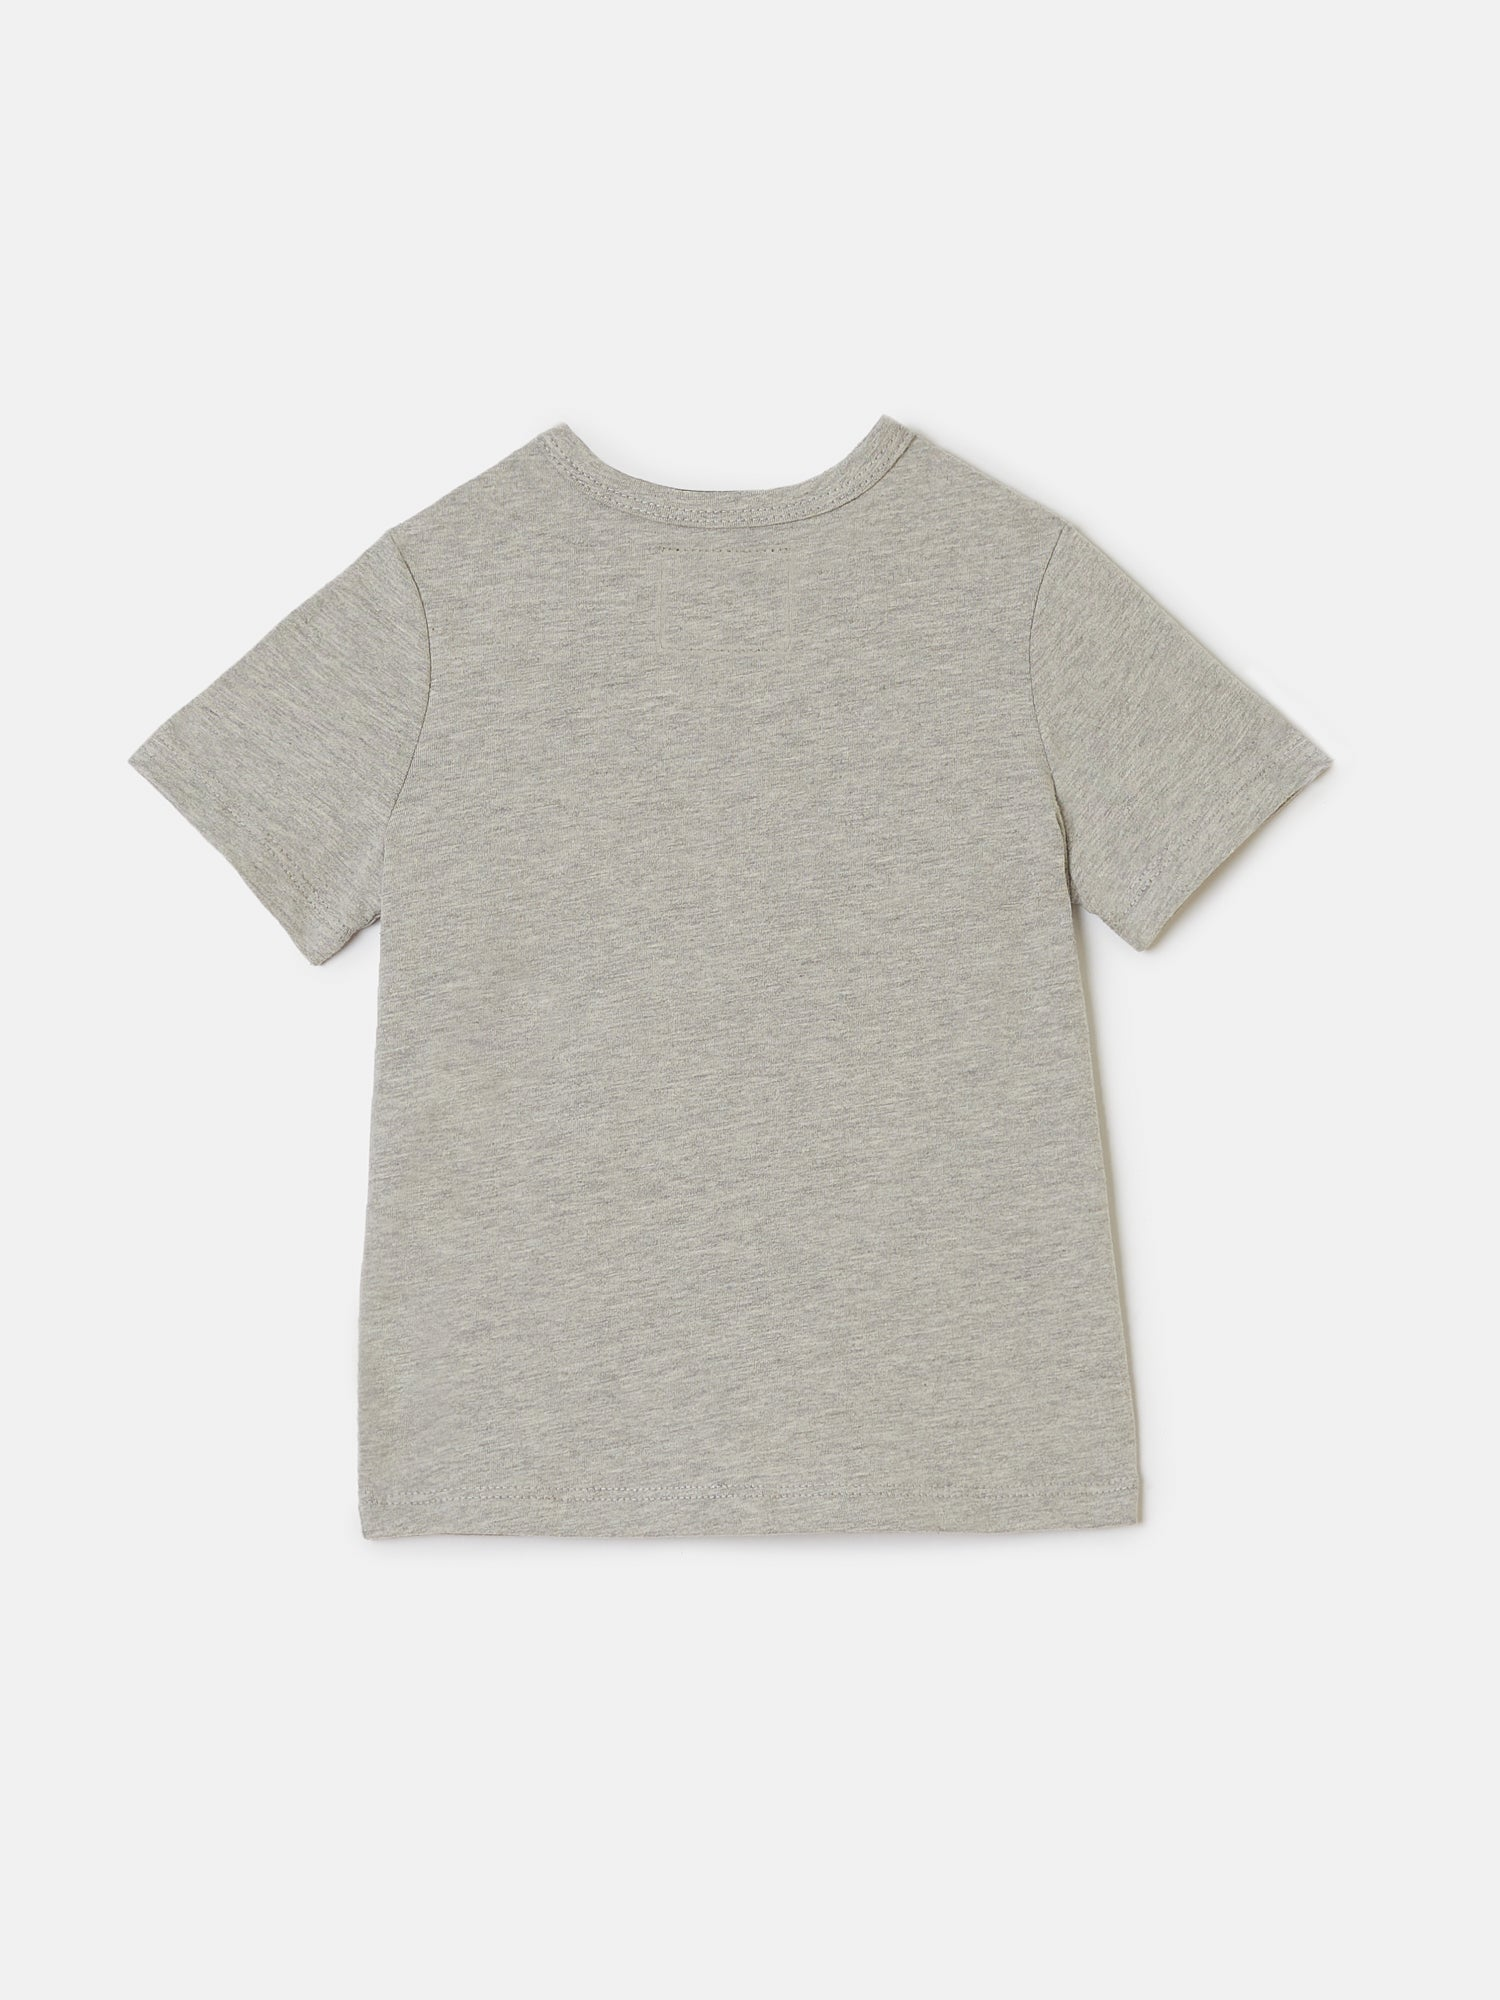 Short Sleeve Tee - Heather Grey